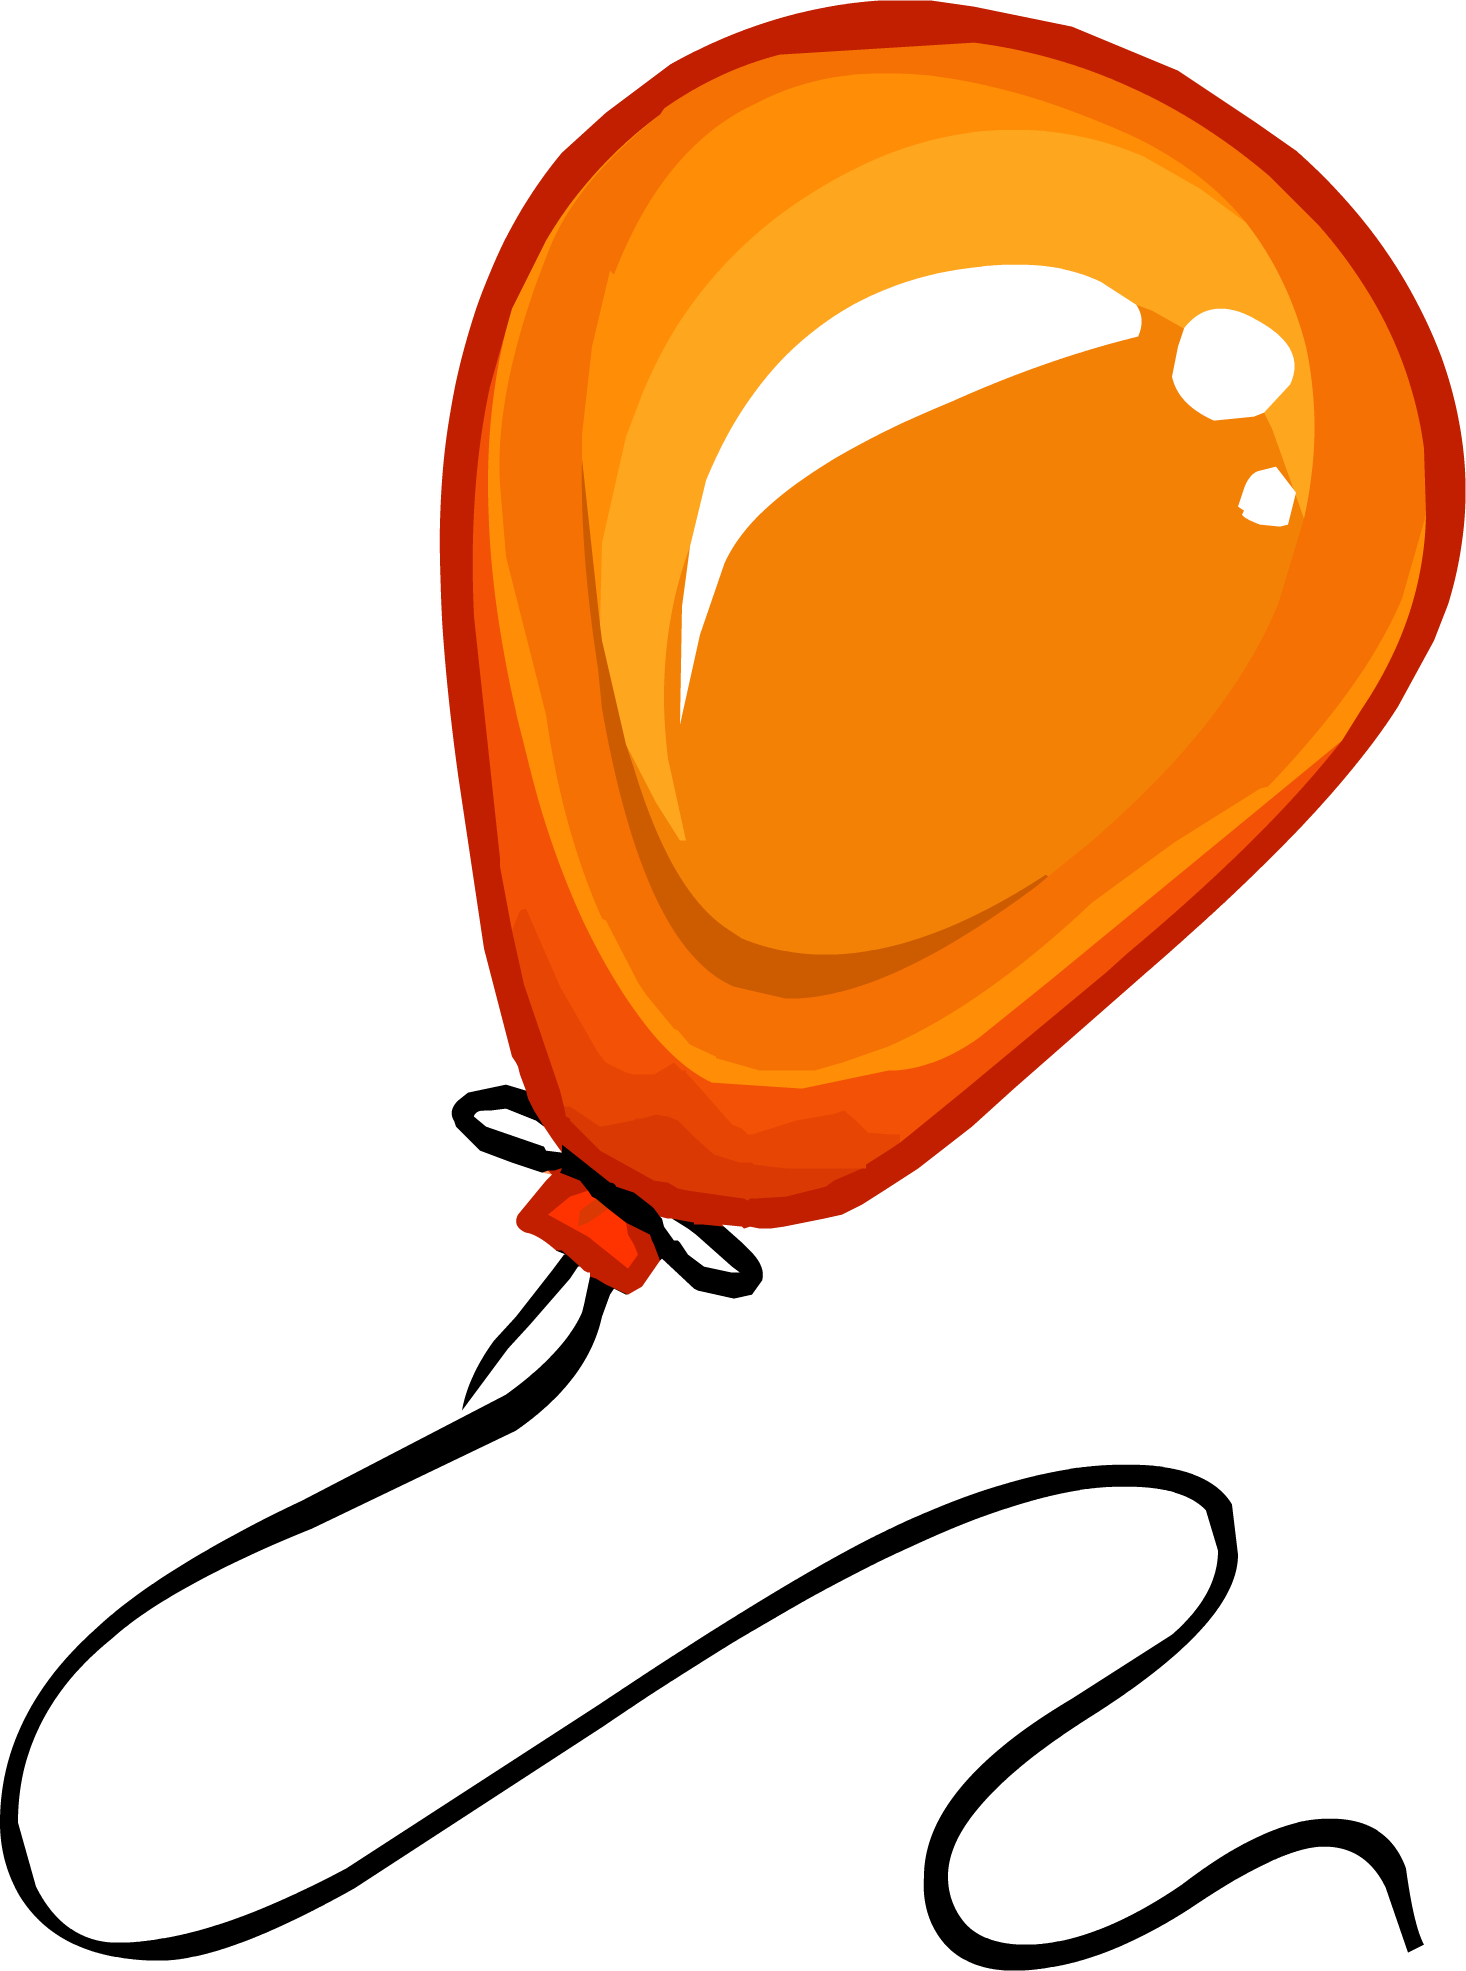 clip art royalty free Image orange balloon clothing. Club clipart number 1.